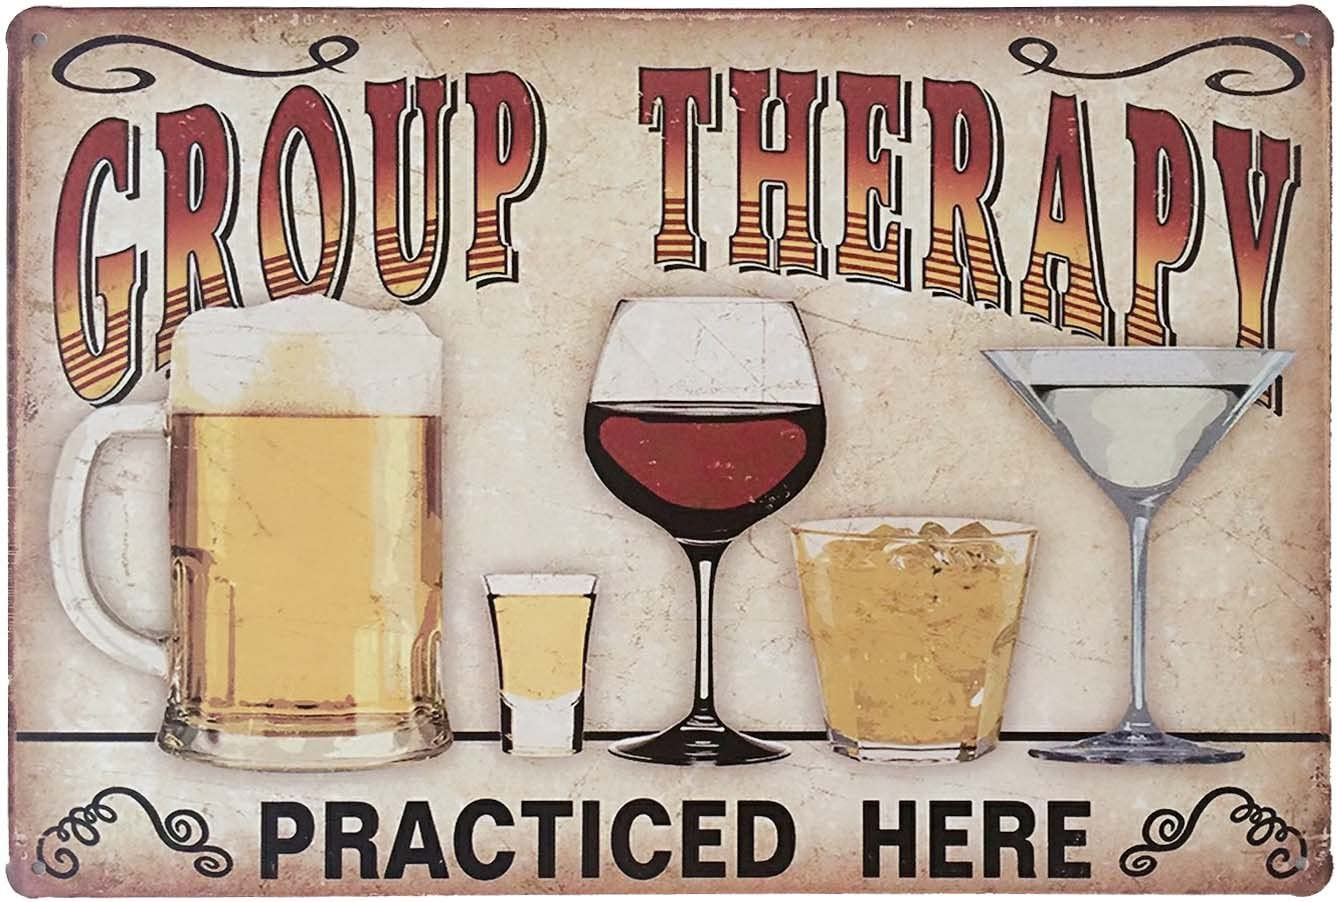 Amazon Com Erlood Retro Vintage Metal Tin Sign Wall Plaque Poster Cafe Bar Pub Beer Club Wall Home Decor Group Therapy Practiced Here 12 X 8 Inches Home Kitchen